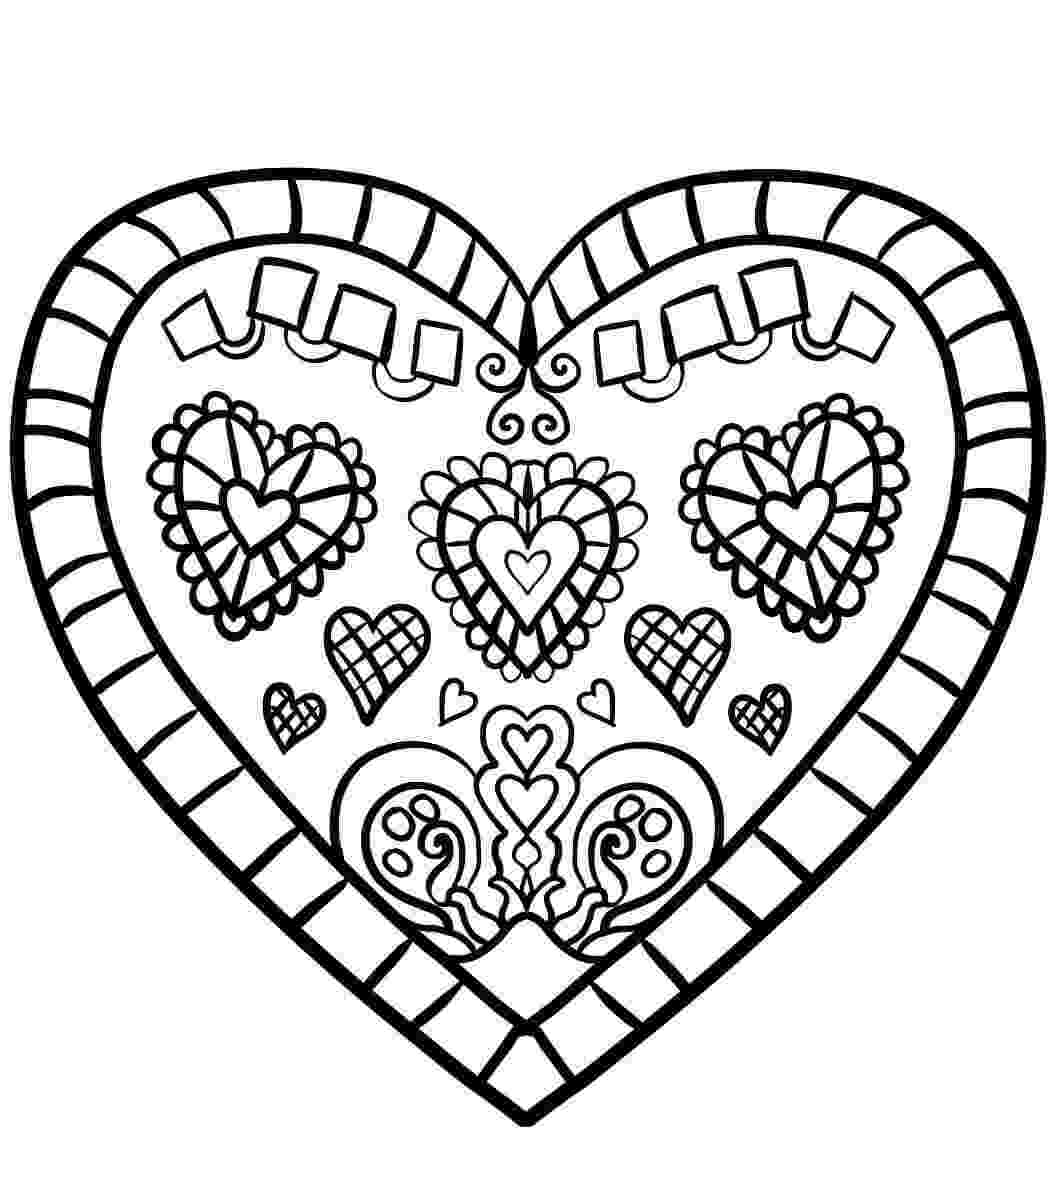 heart colouring pages 35 free printable heart coloring pages heart colouring pages